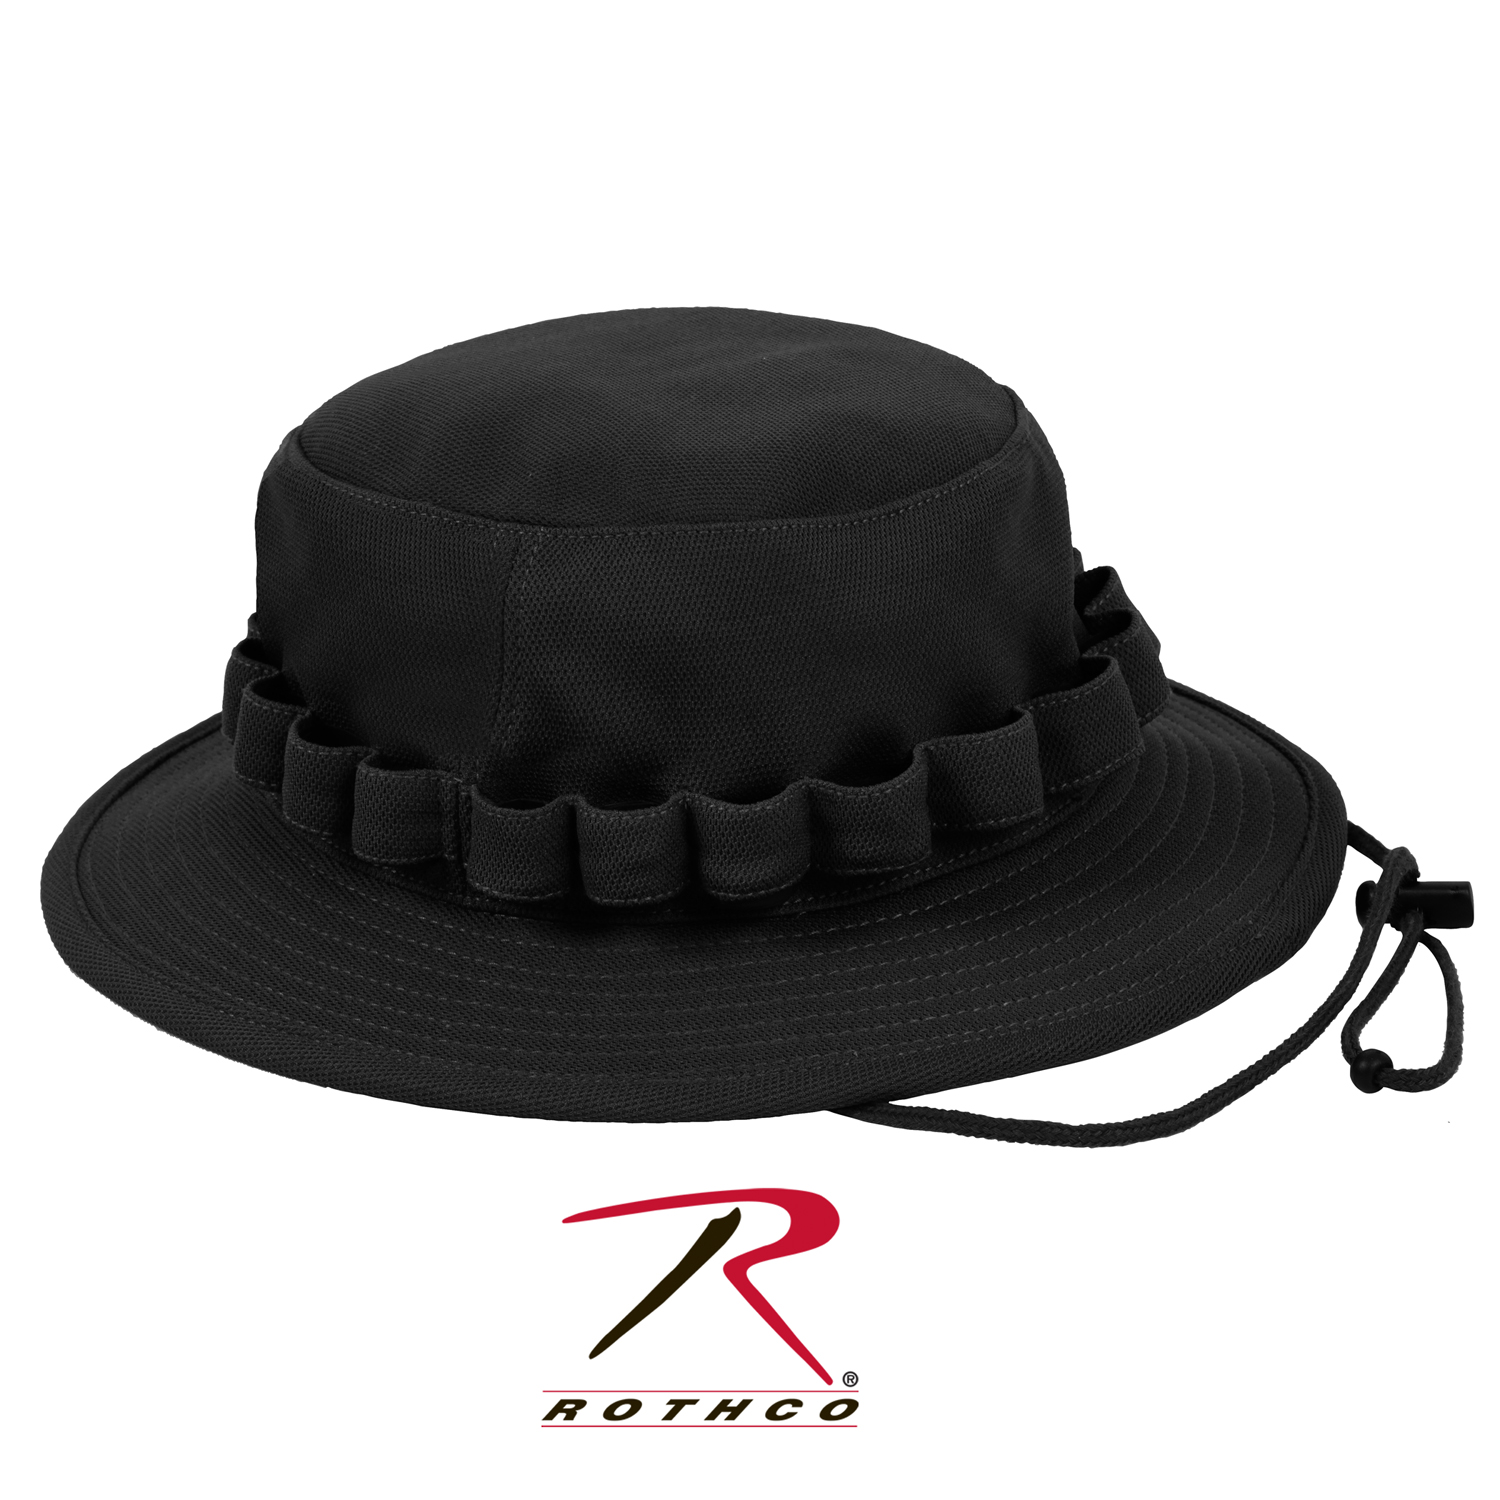 c53185042ef Rothco Coolweight Boonie Hat